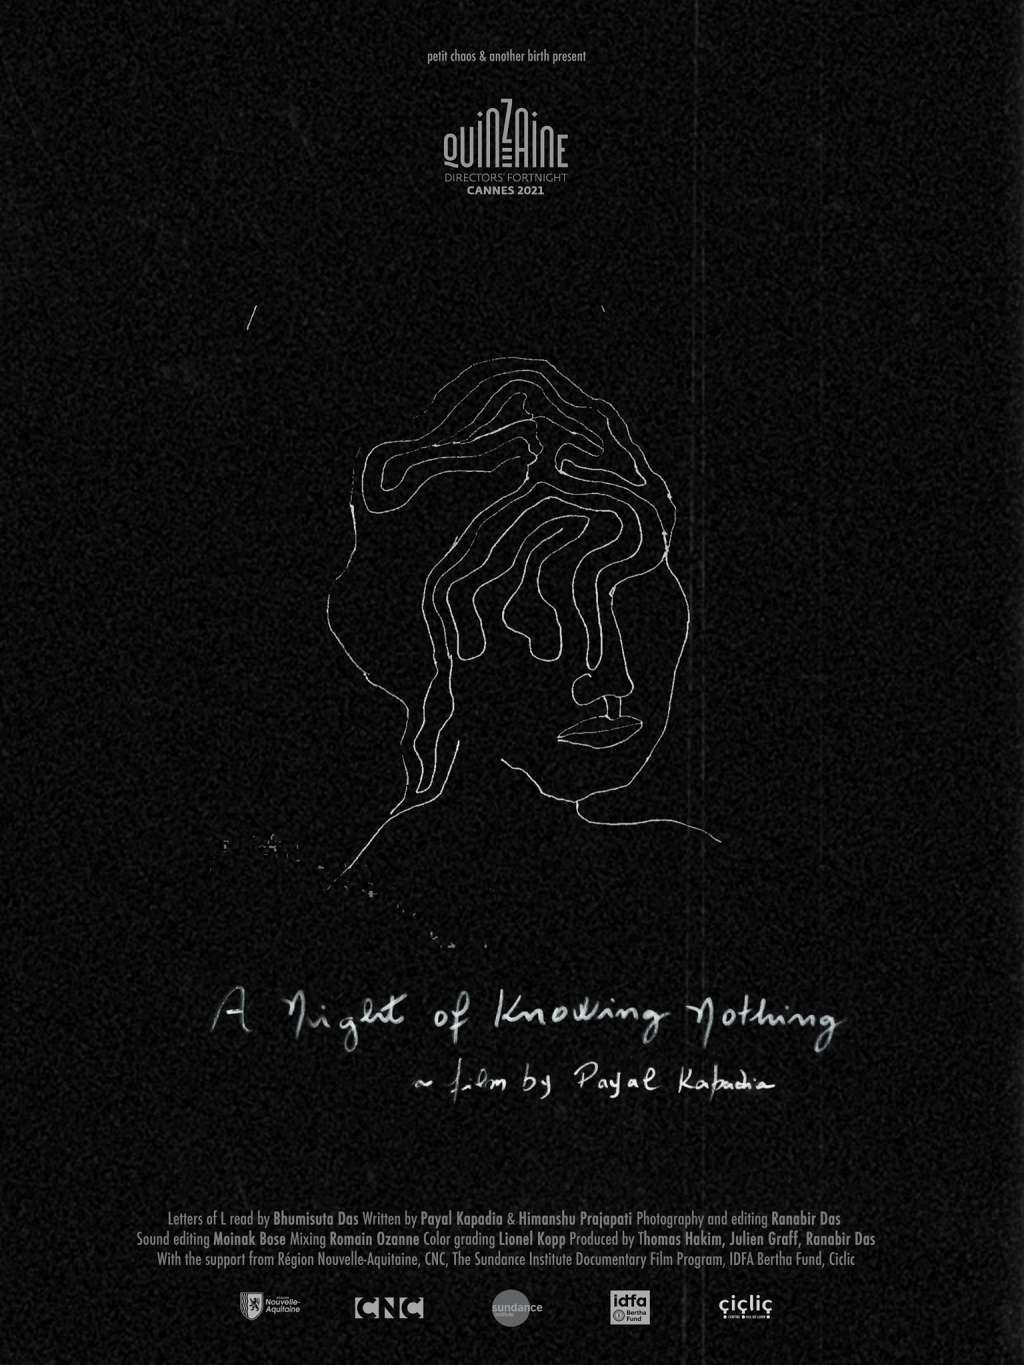 A Night of Knowing Nothing kapak